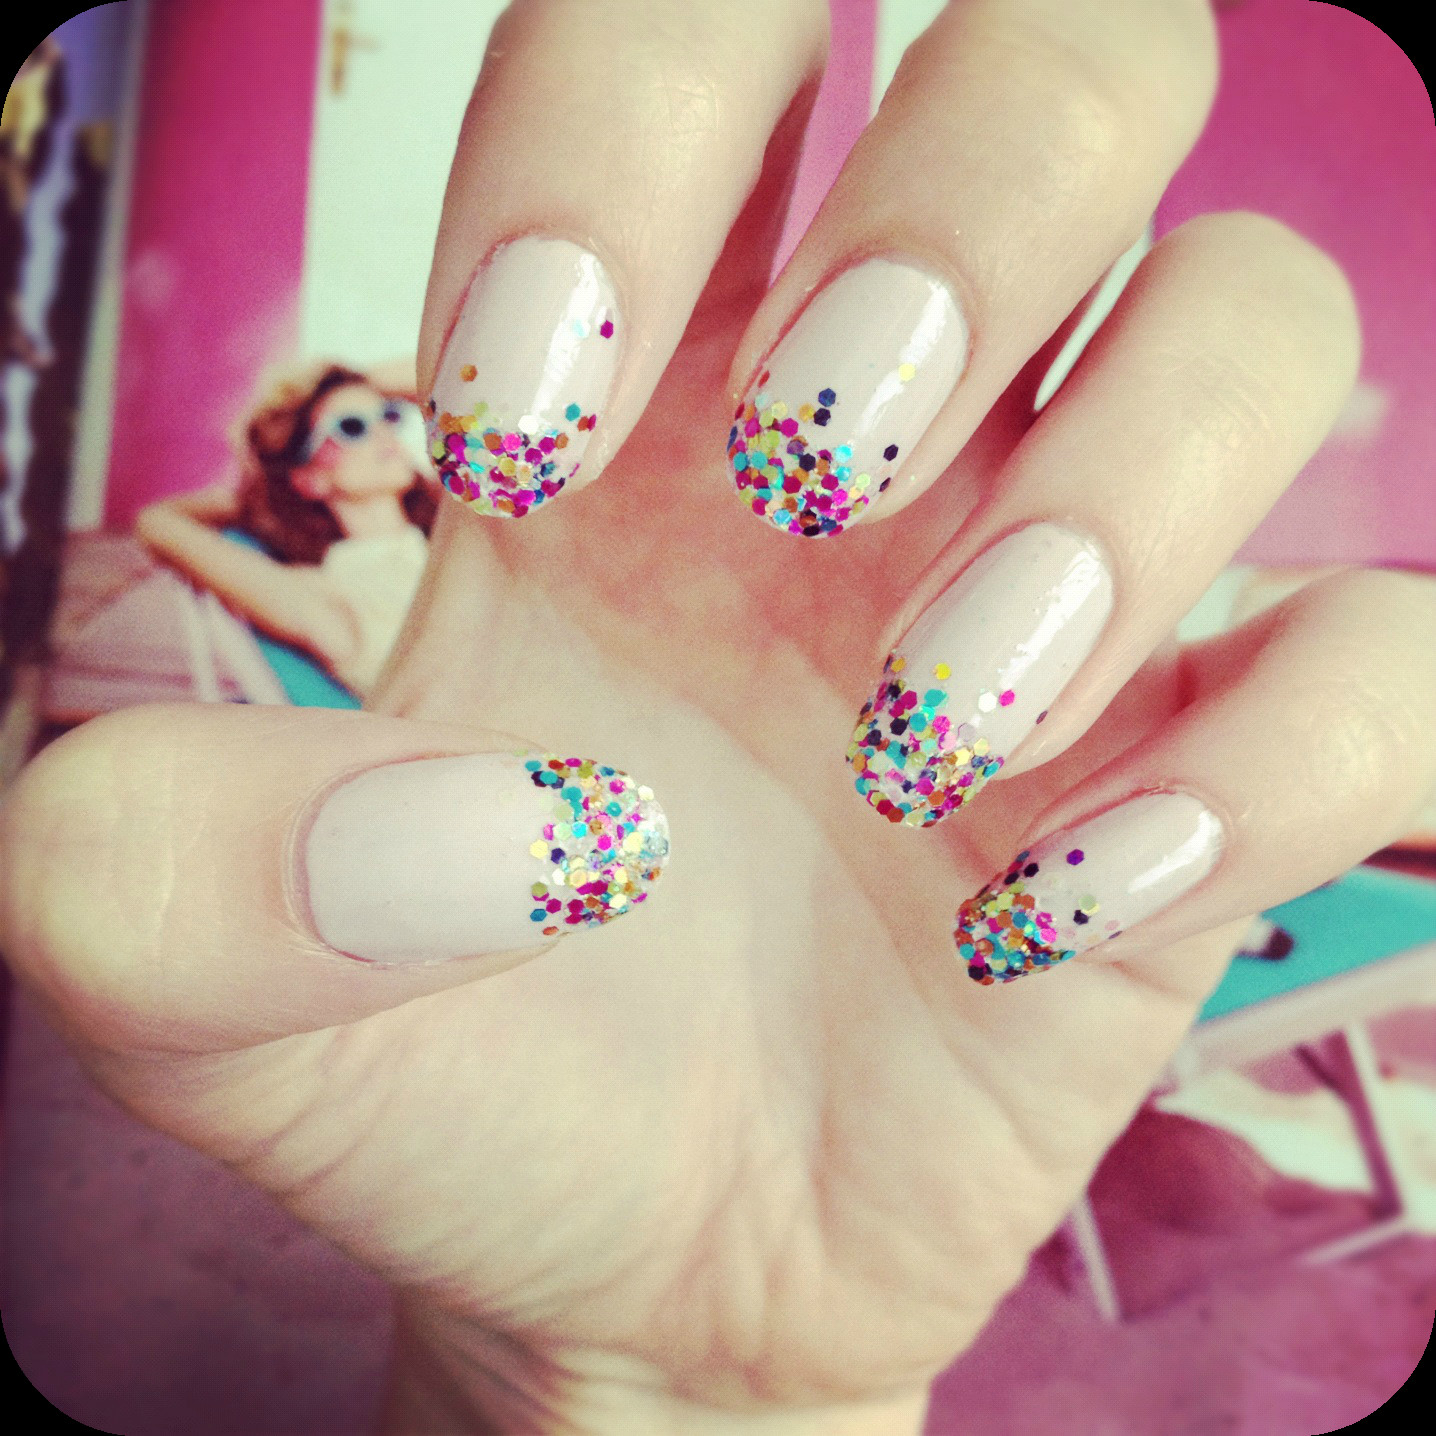 Best ideas about DIY Nail Art . Save or Pin simple glitter fade nail art DIY Now.